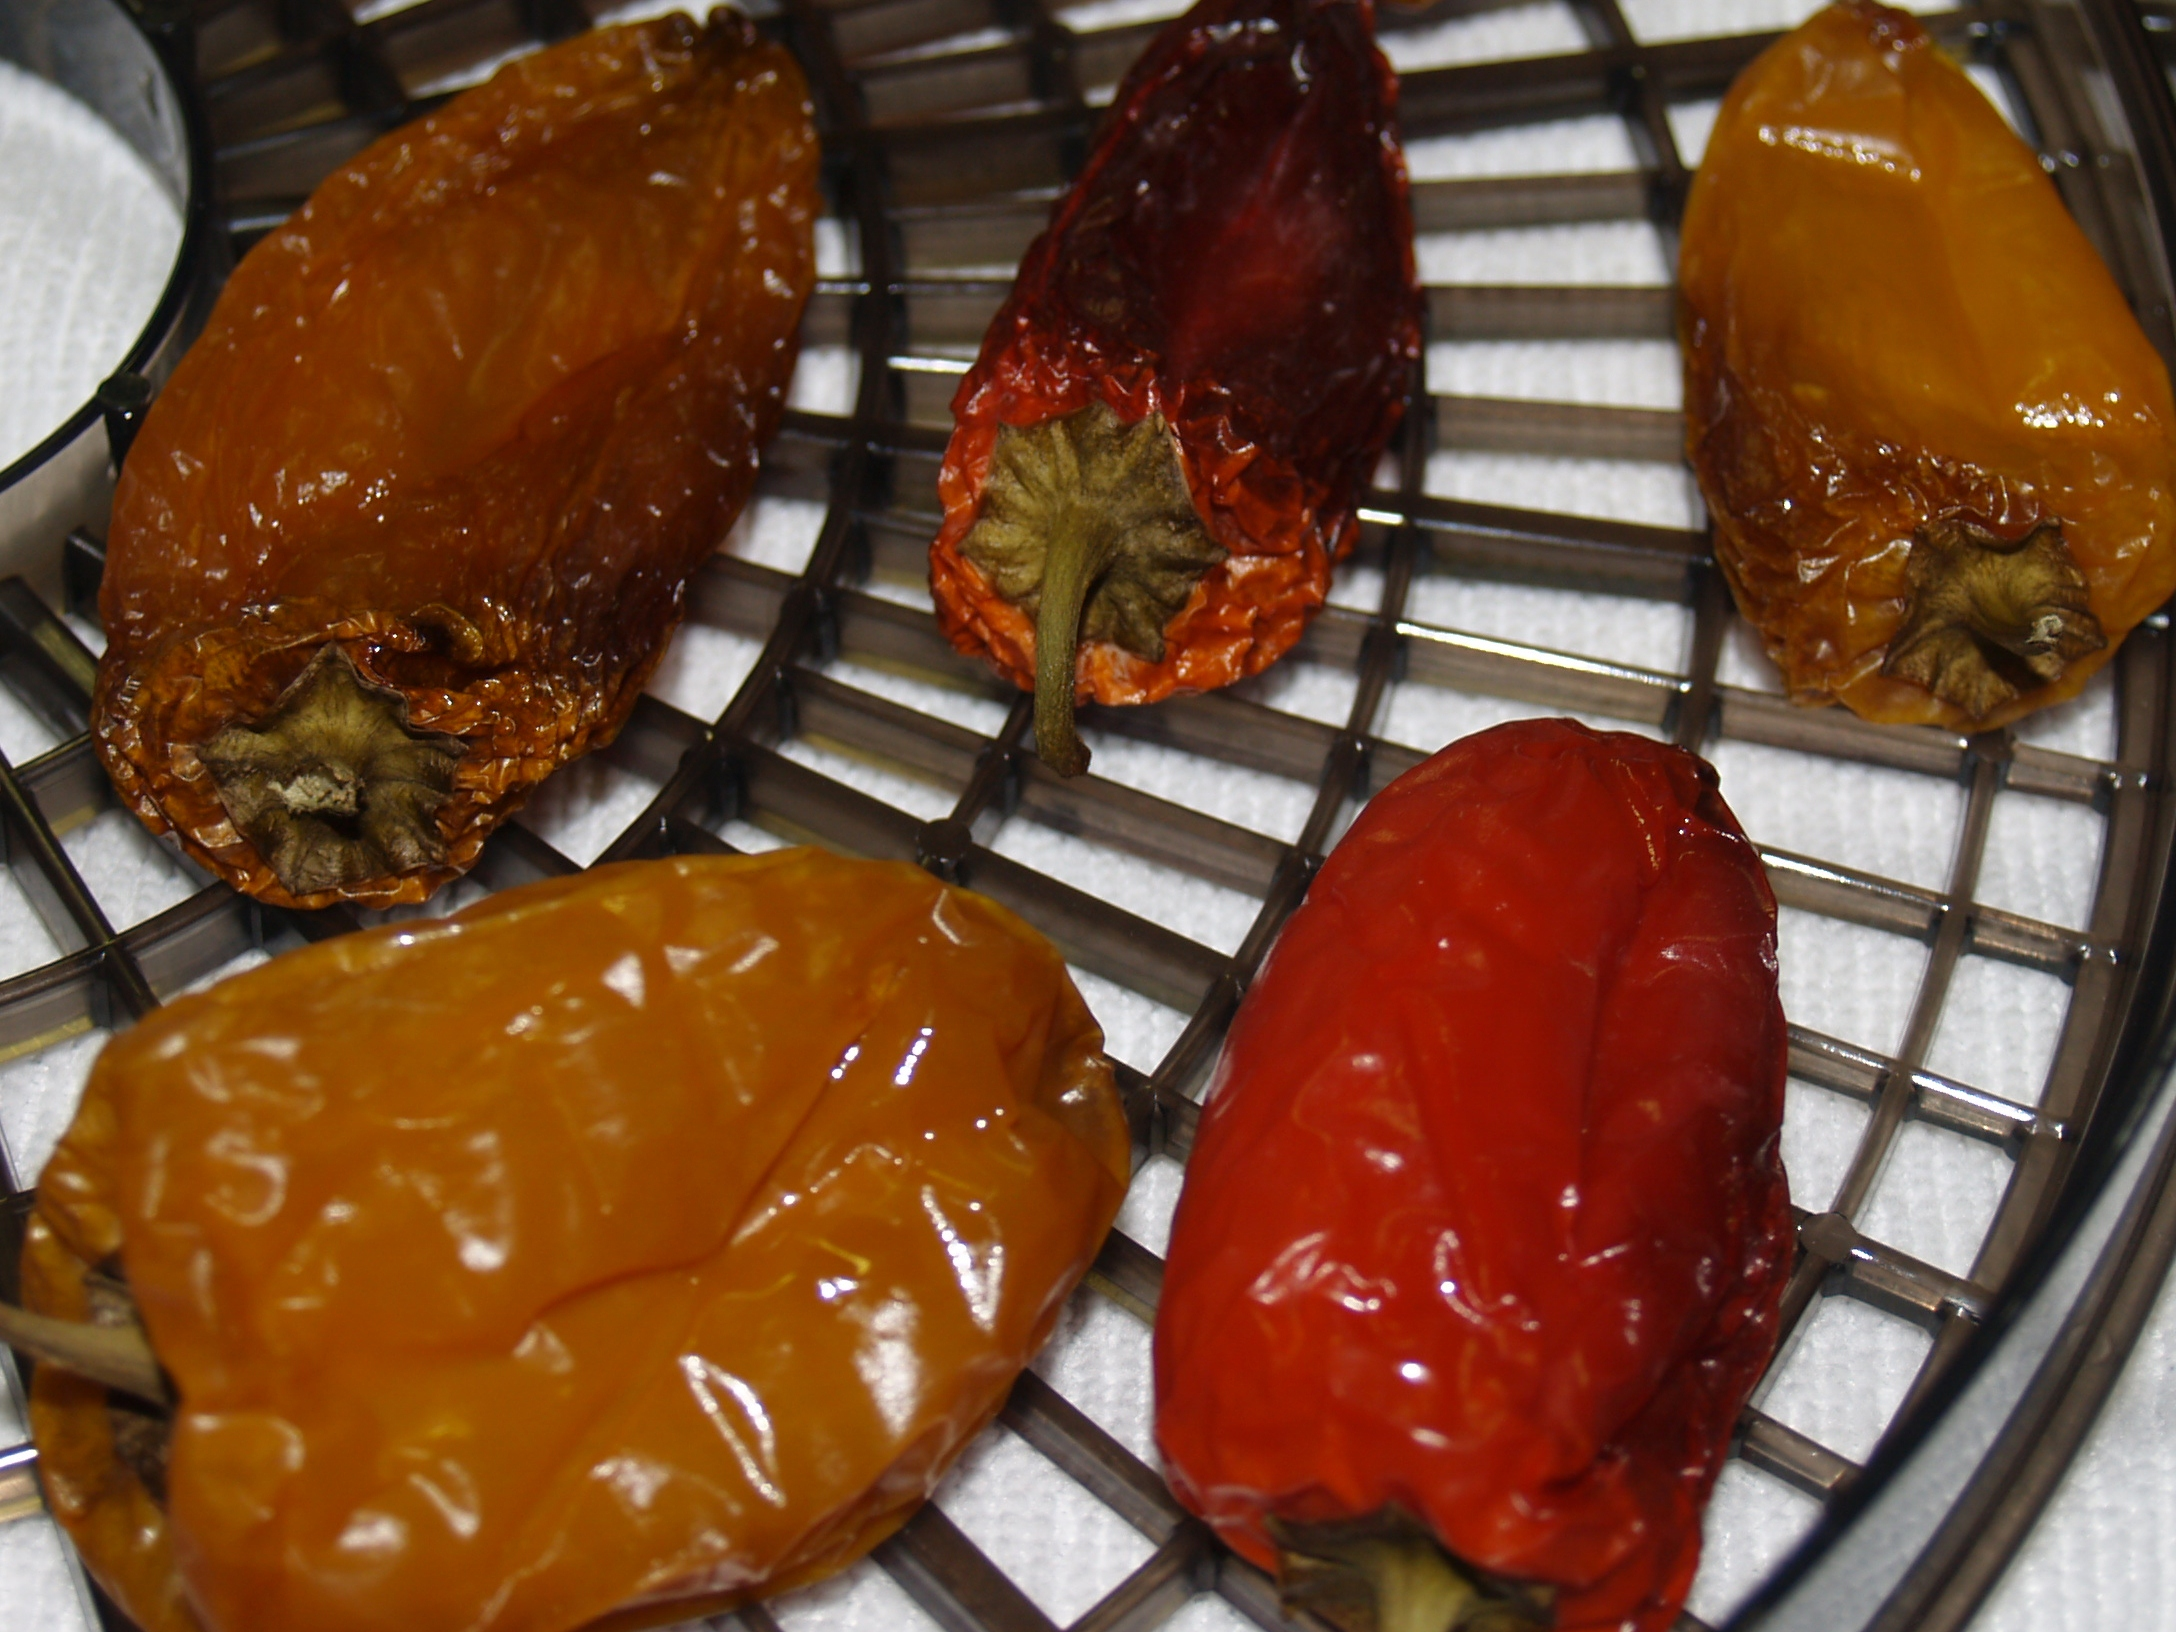 Dehydrating Peppers after Smoking Them